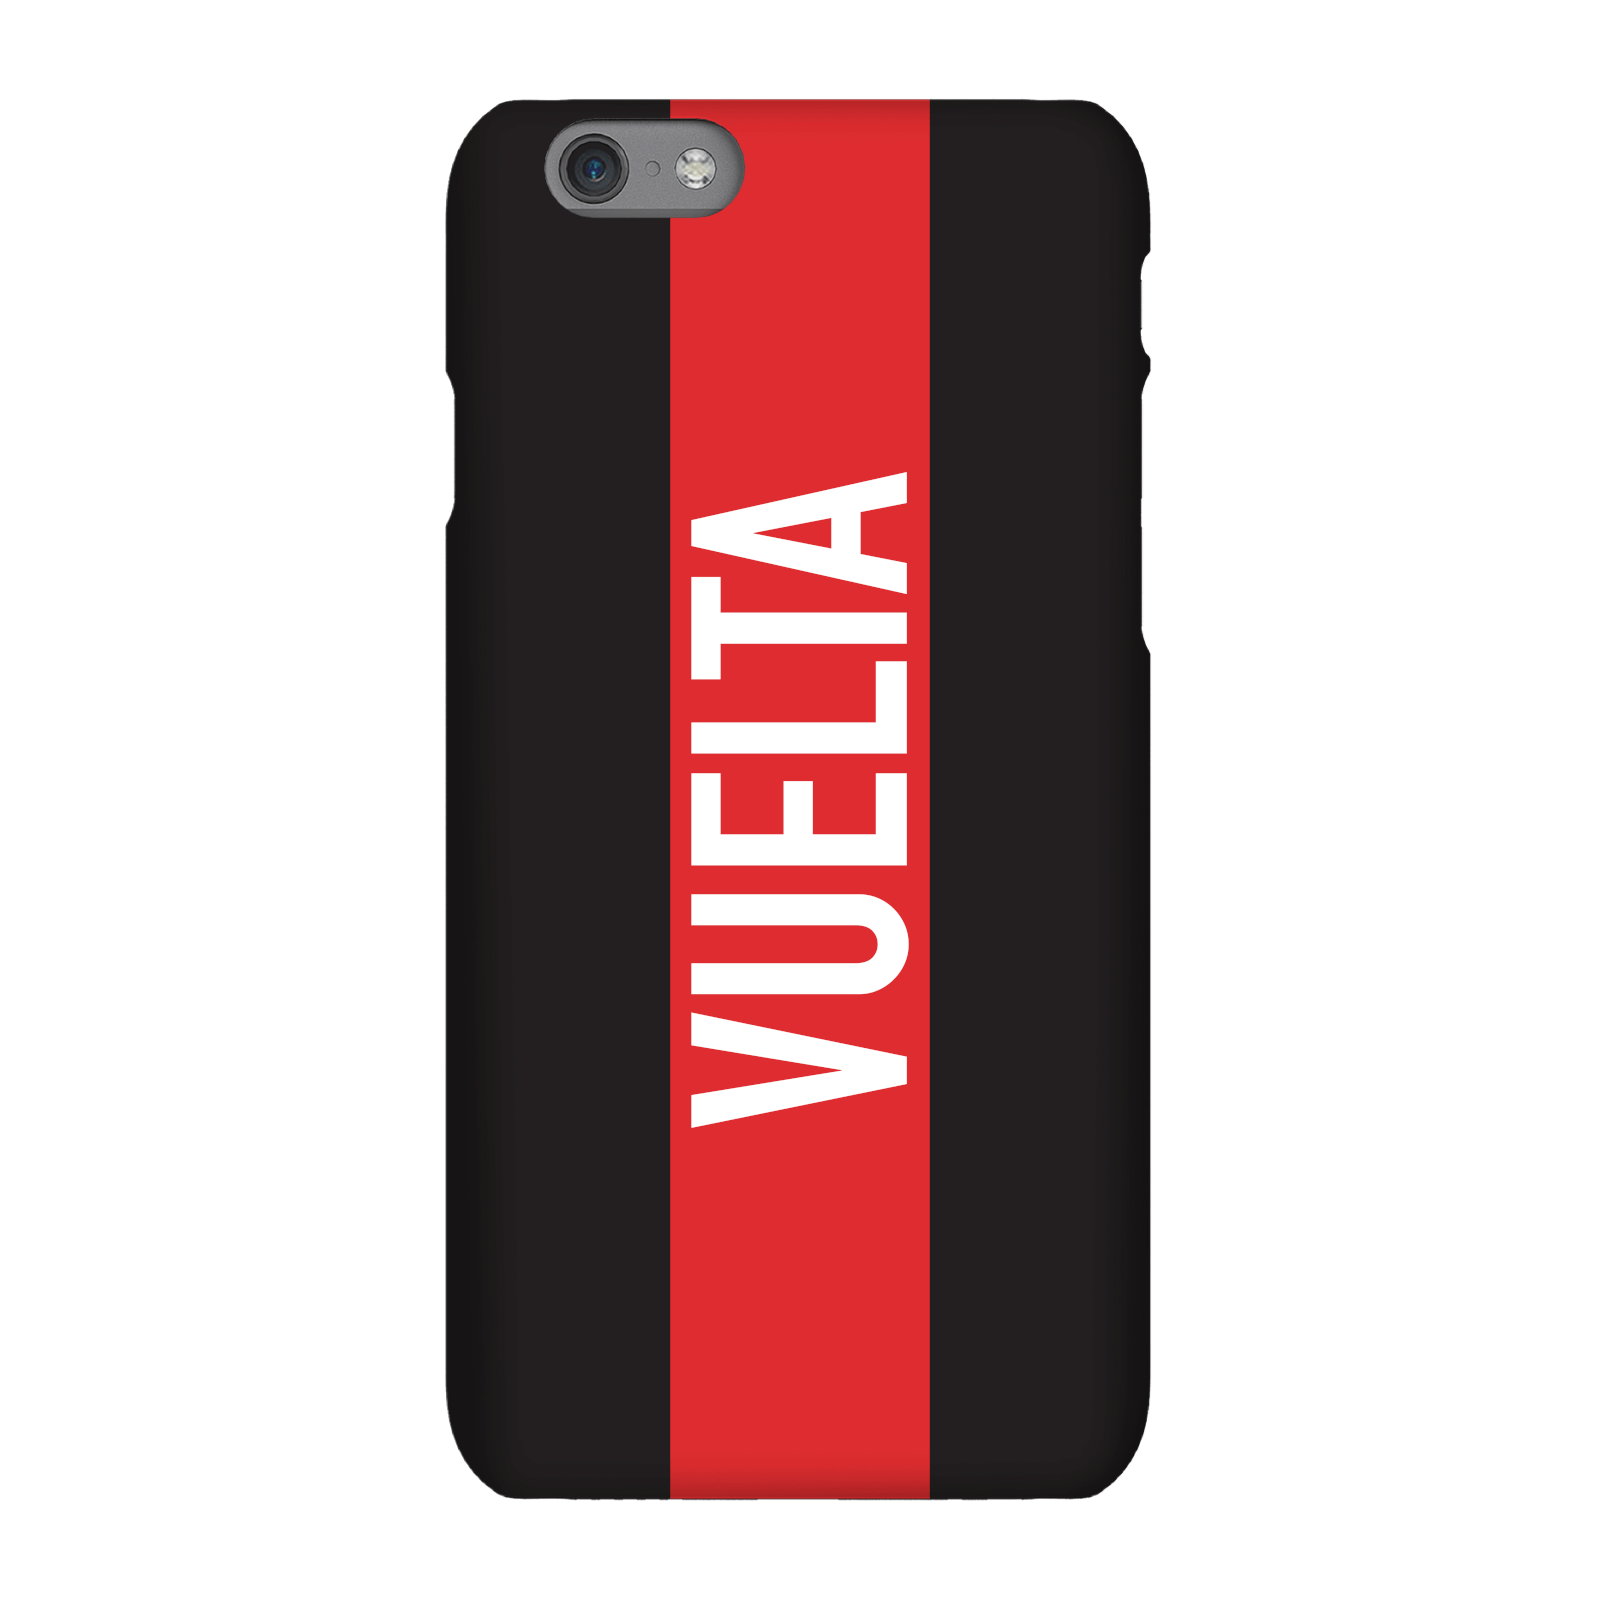 Vuelta Phone Case For Iphone And Android - Iphone 5/5s - Snap Case - Gloss